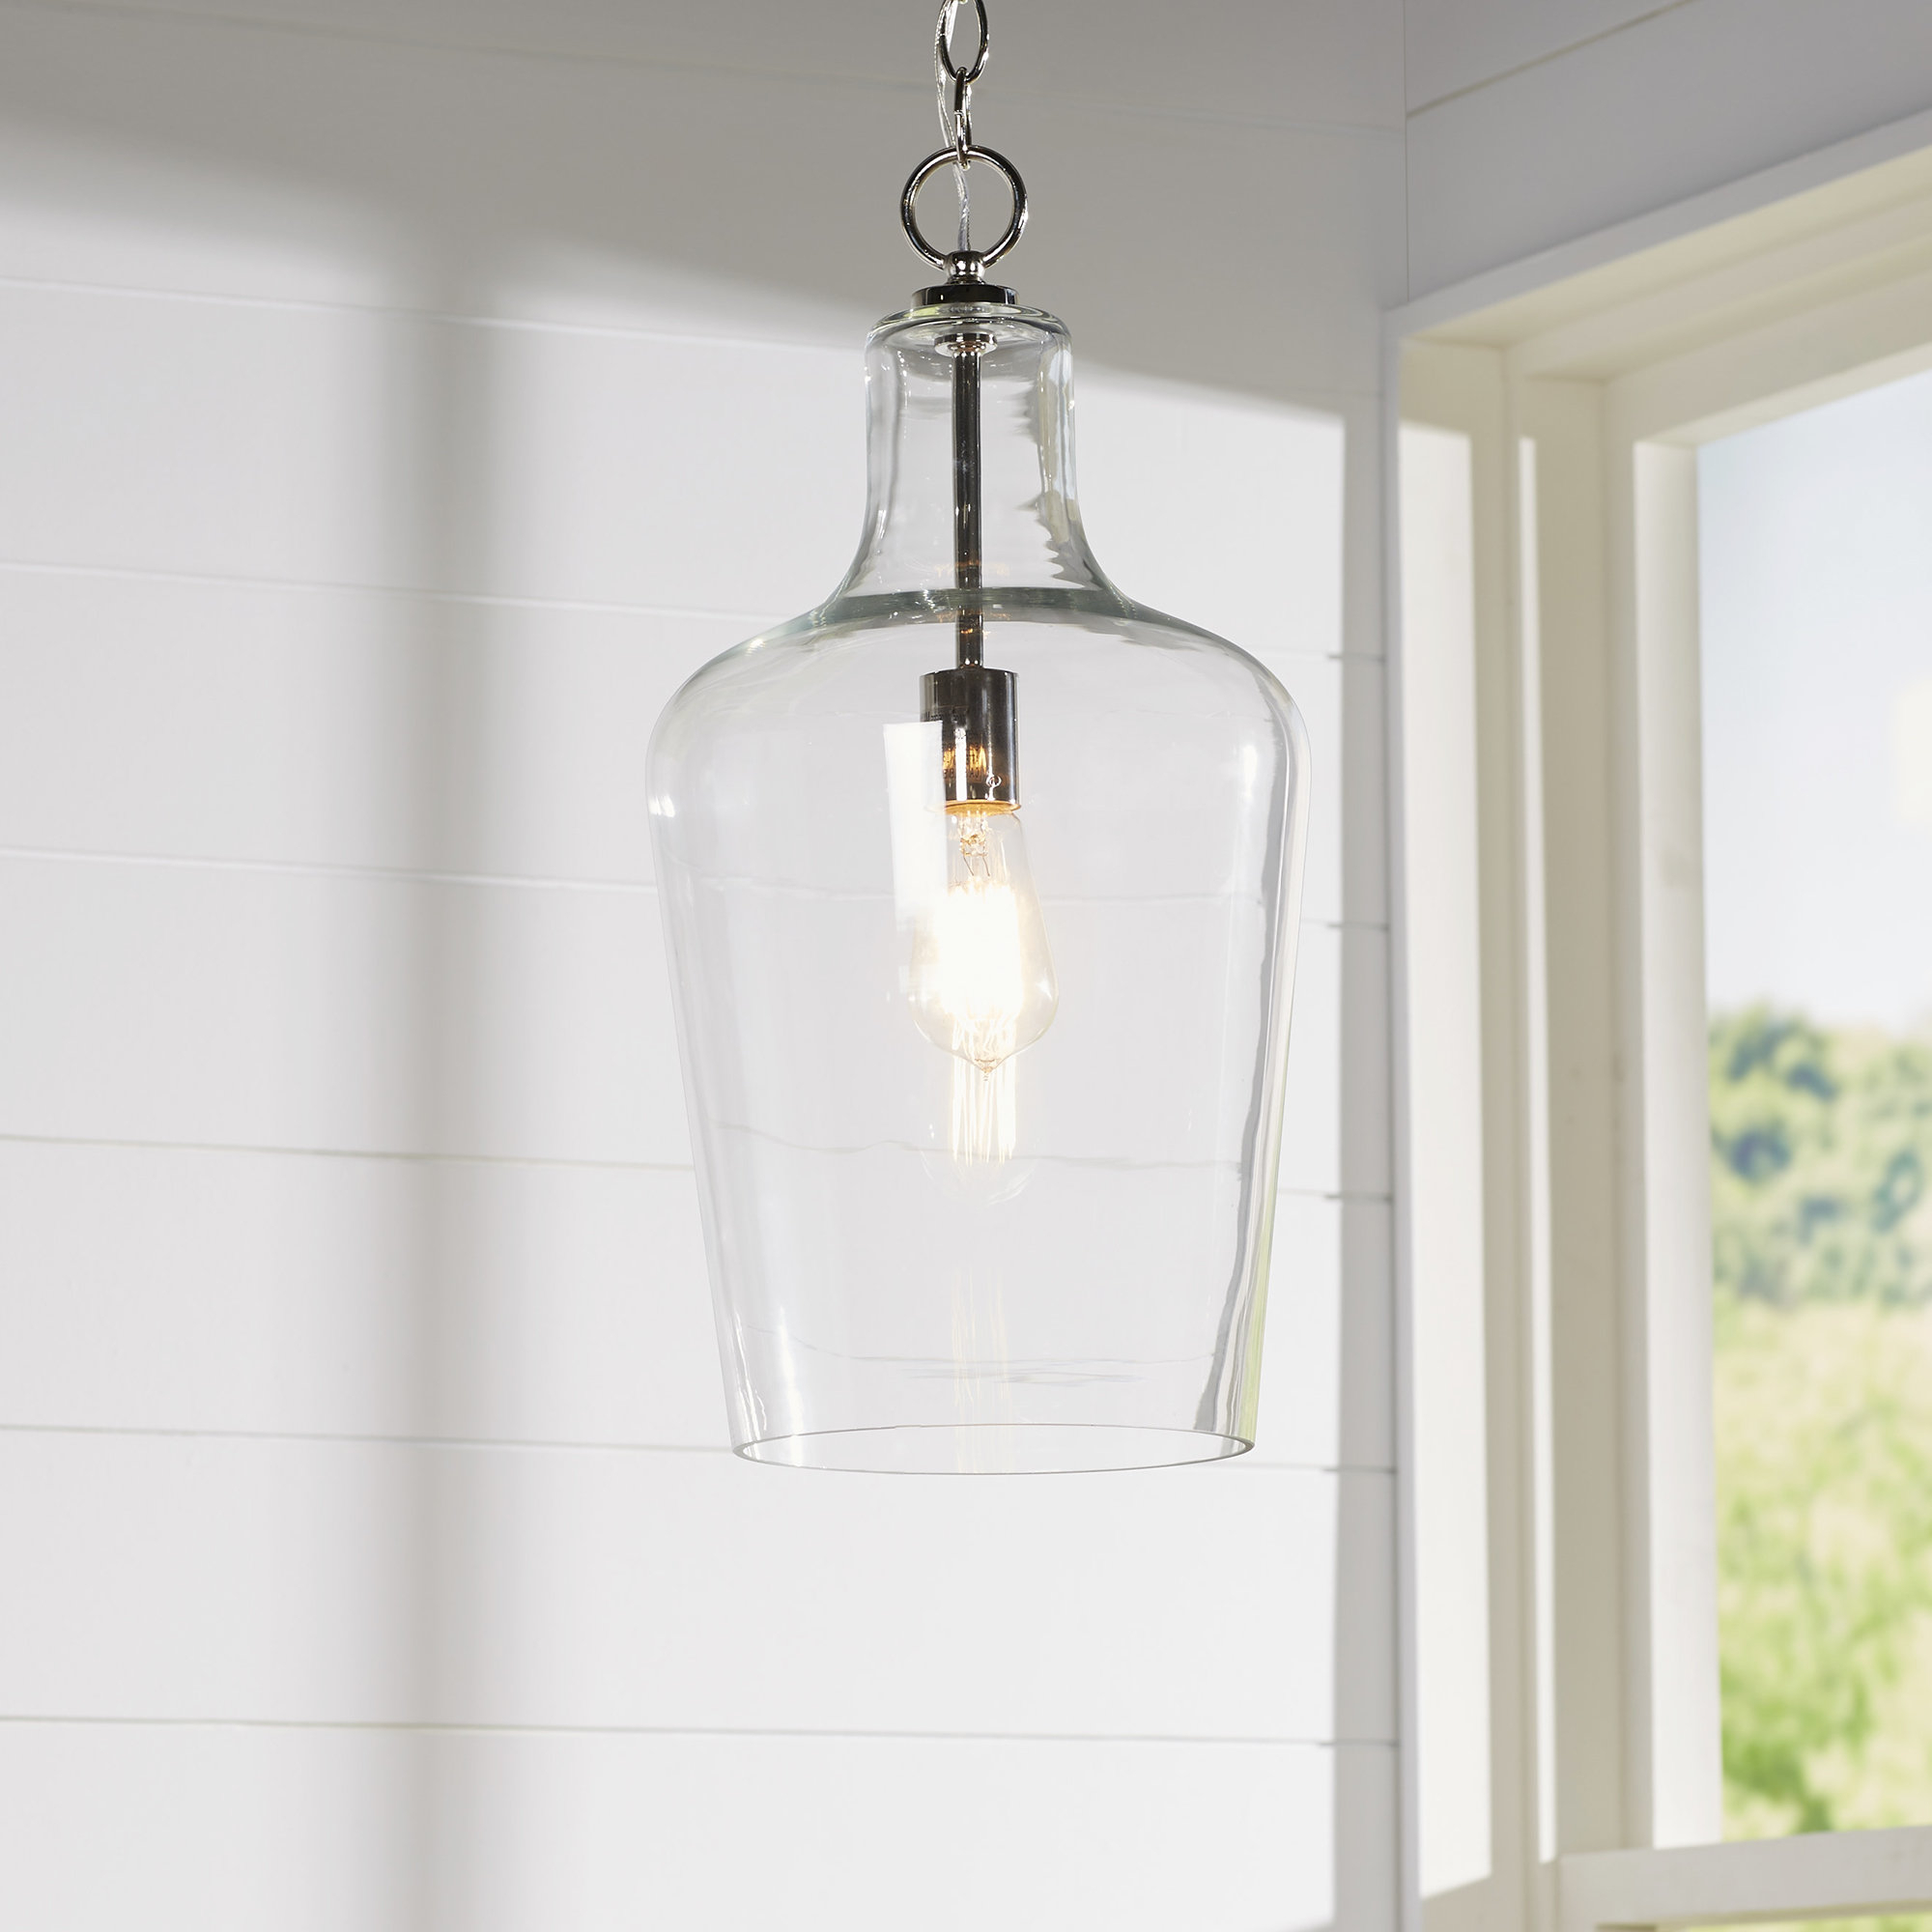 Trendy Carey 1 Light Single Bell Pendant Intended For Carey 1 Light Single Bell Pendants (View 1 of 20)